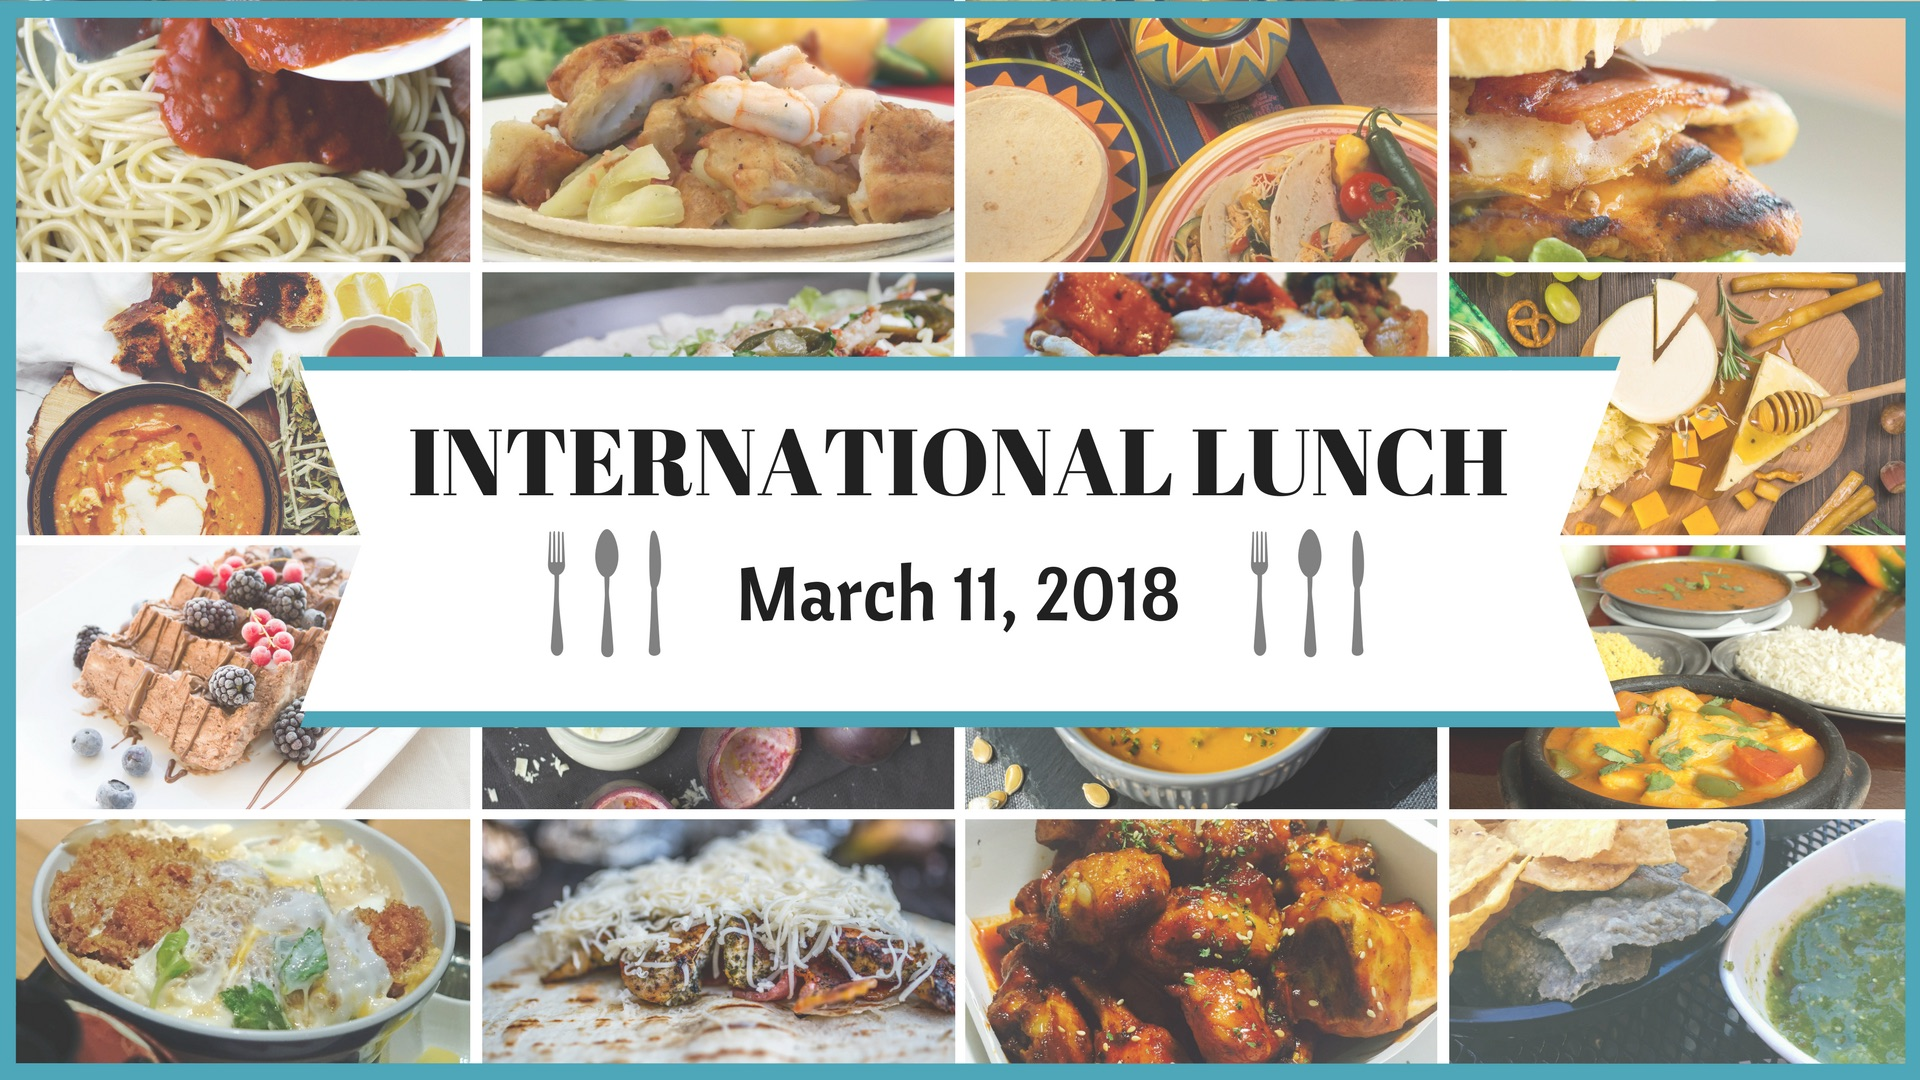 International Lunch 1920 x 1080 image